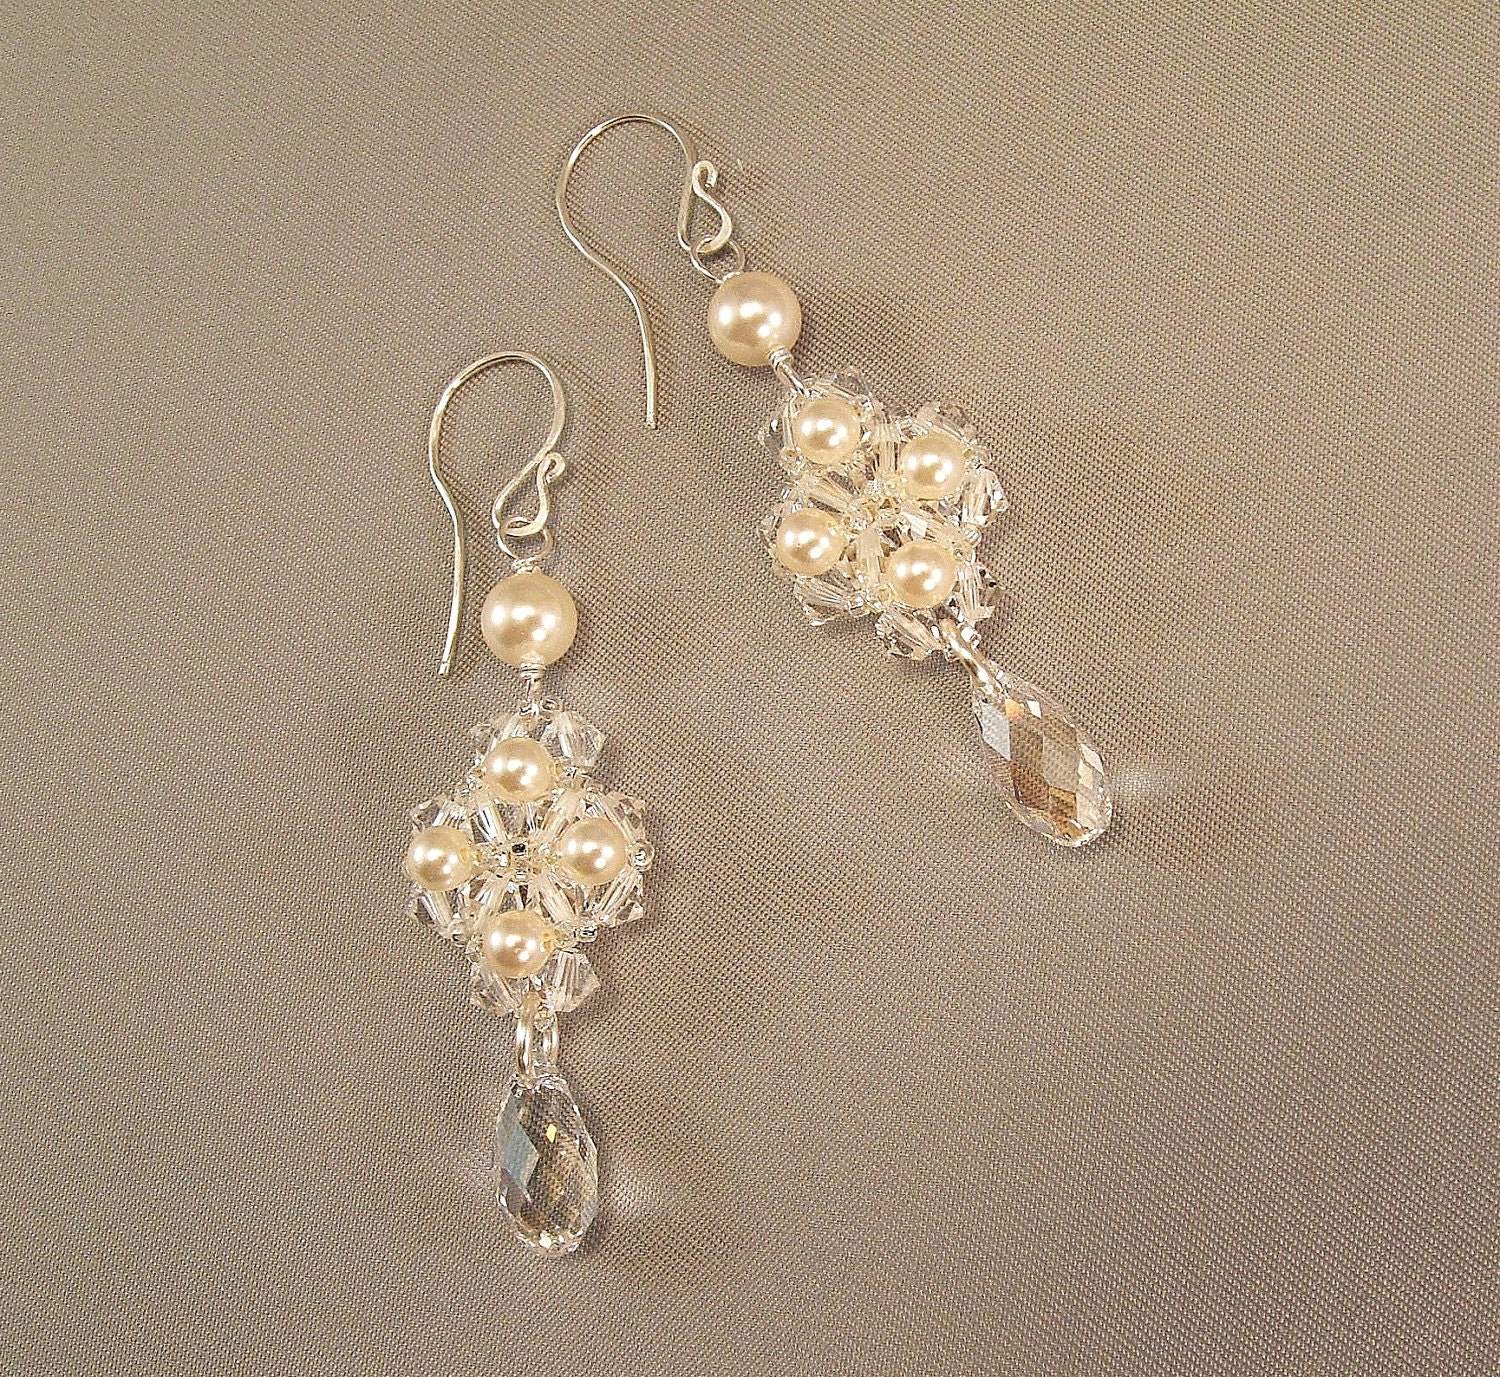 Regal Ivory Pearl and Crystal Wedding Earrings Ivory by Handwired from etsy.com